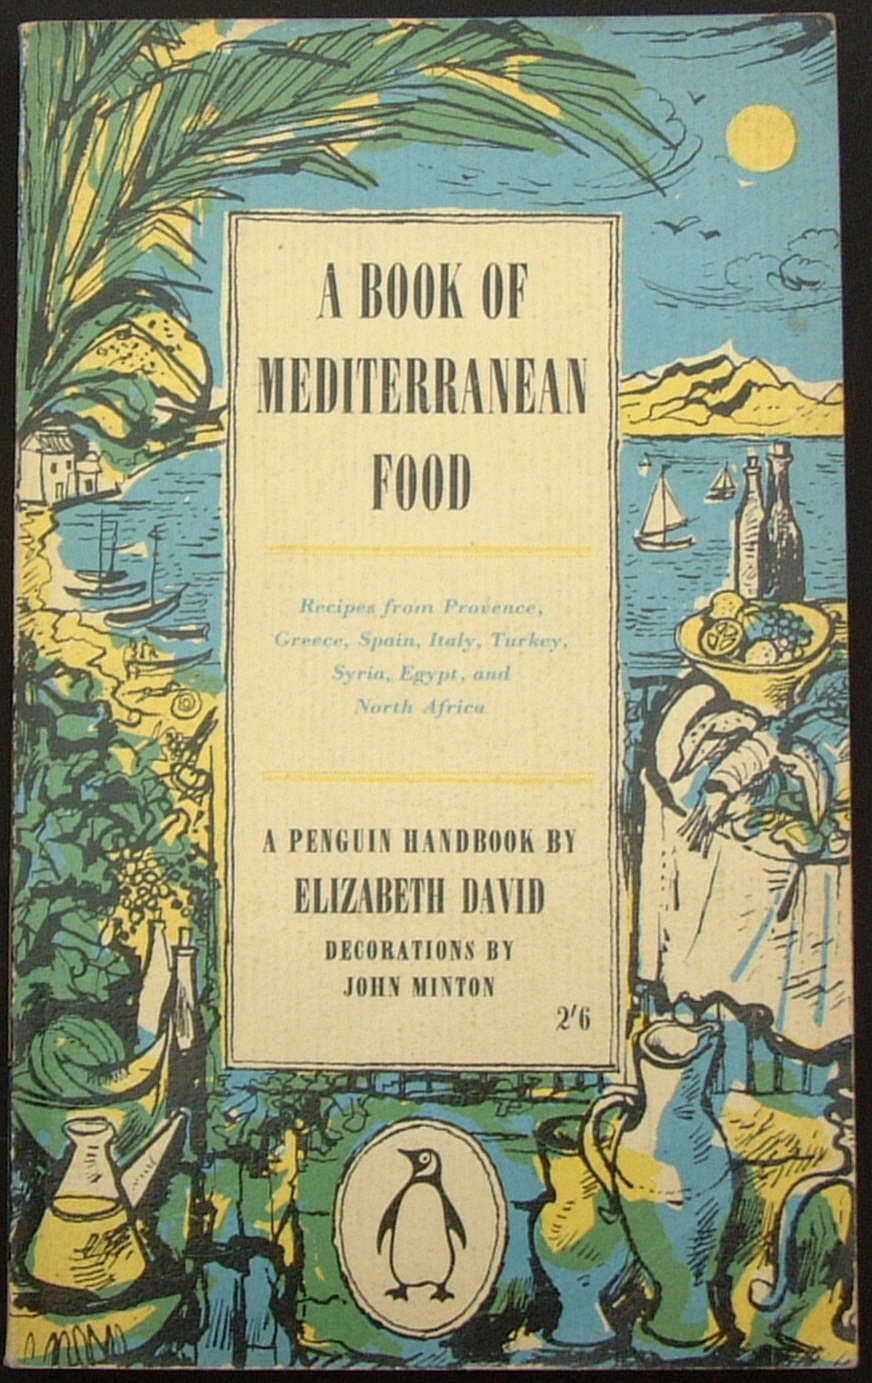 A Book Of Mediterranean Food Elizabeth David In 1949 She Started Writing About Mediterranean Cookery For The Magazine Harp Books Elizabeth David Penguin Books